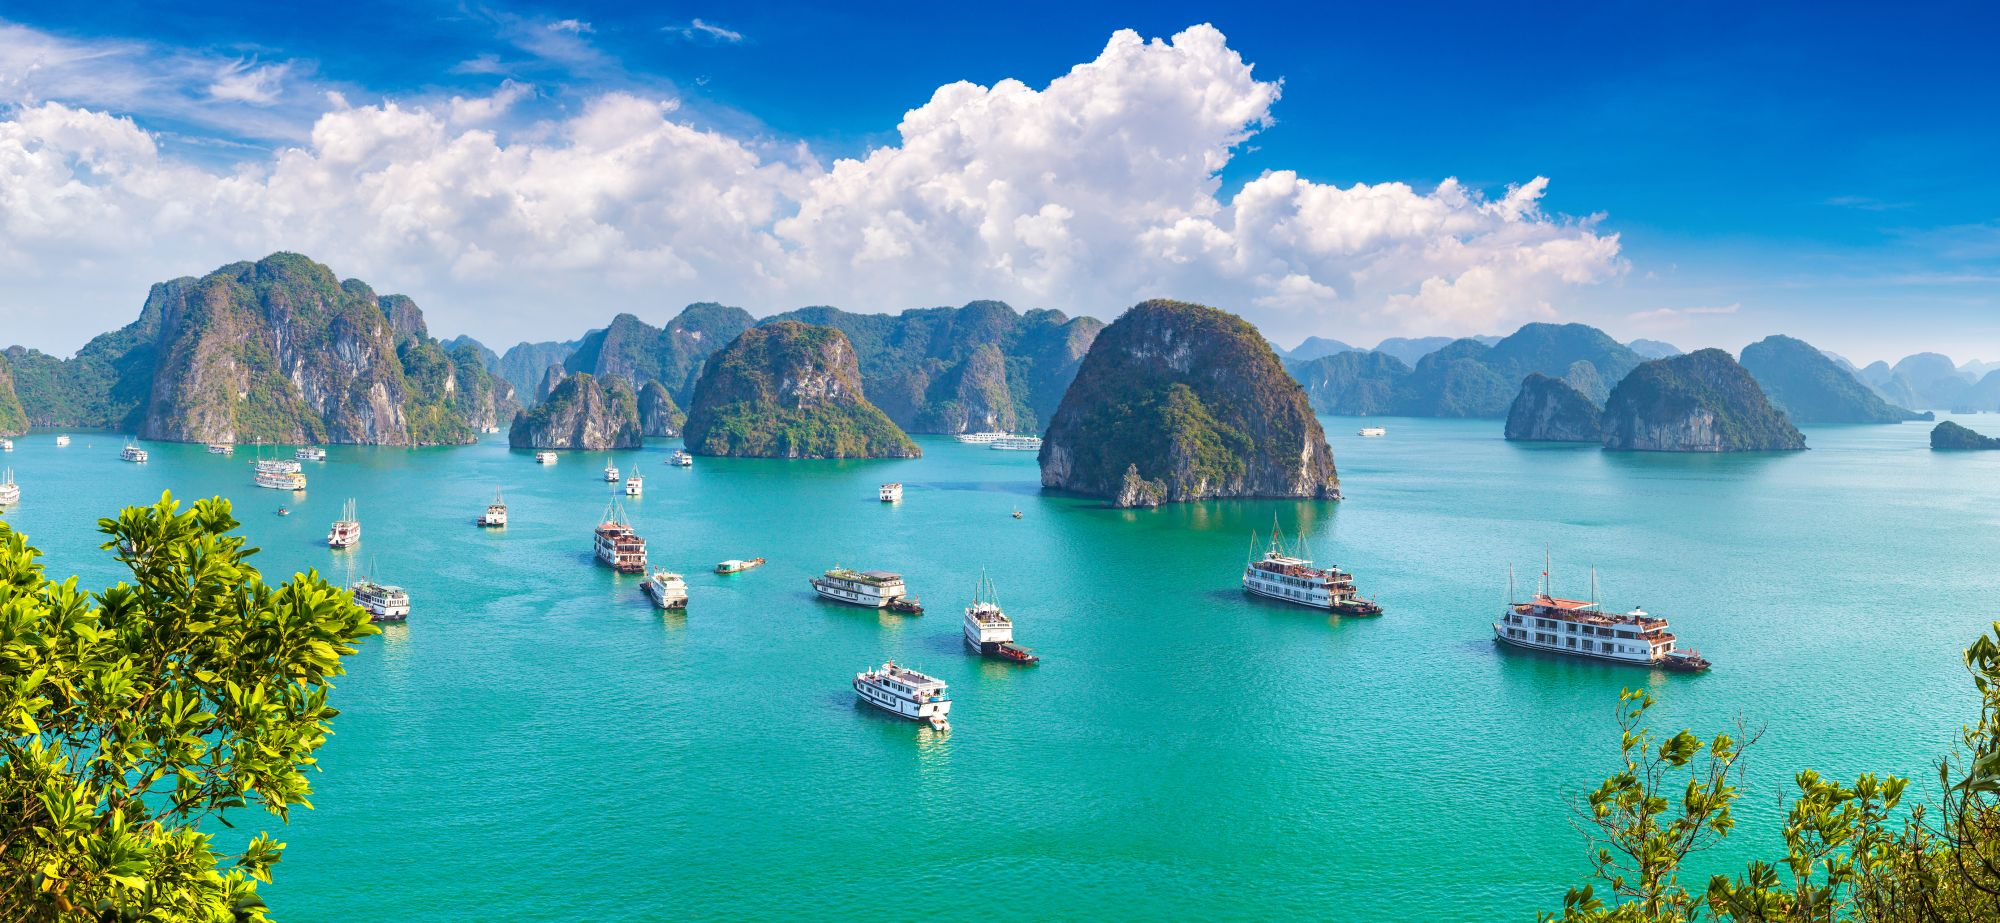 Vietnam Halong Bay overview